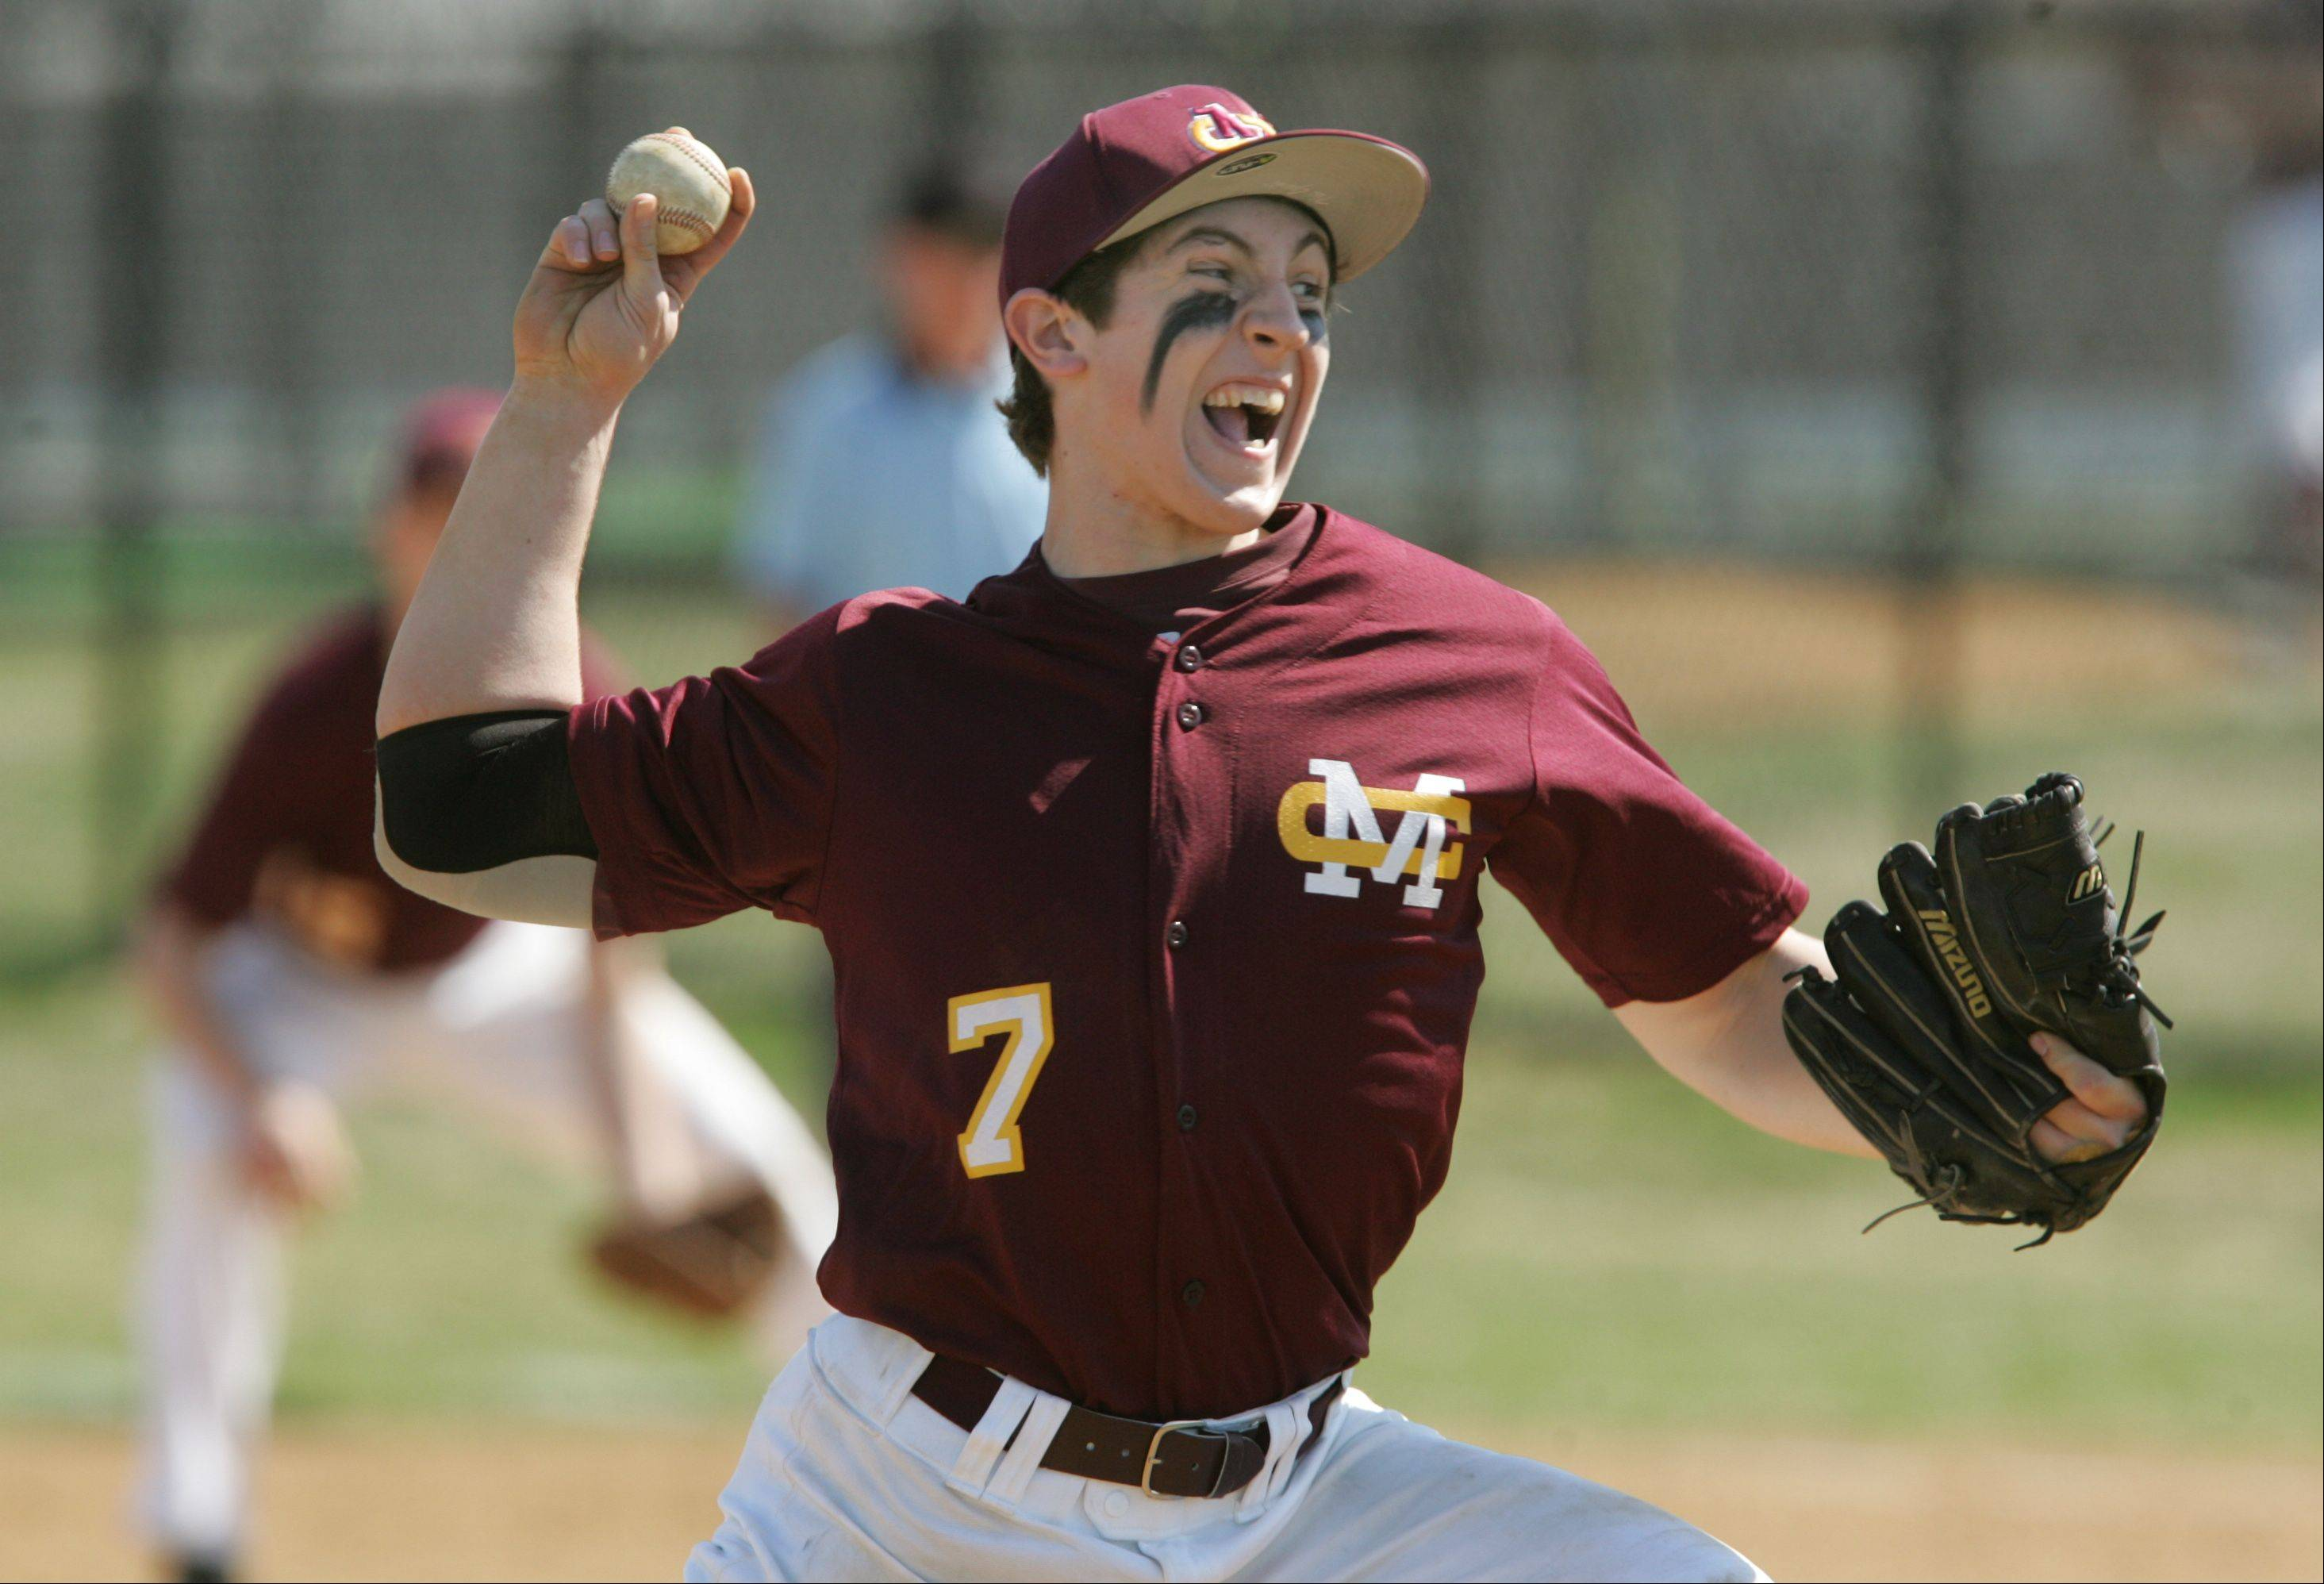 Montini's Mike Mangialardi delivers a pitch against Addison Trail during opening day baseball action.